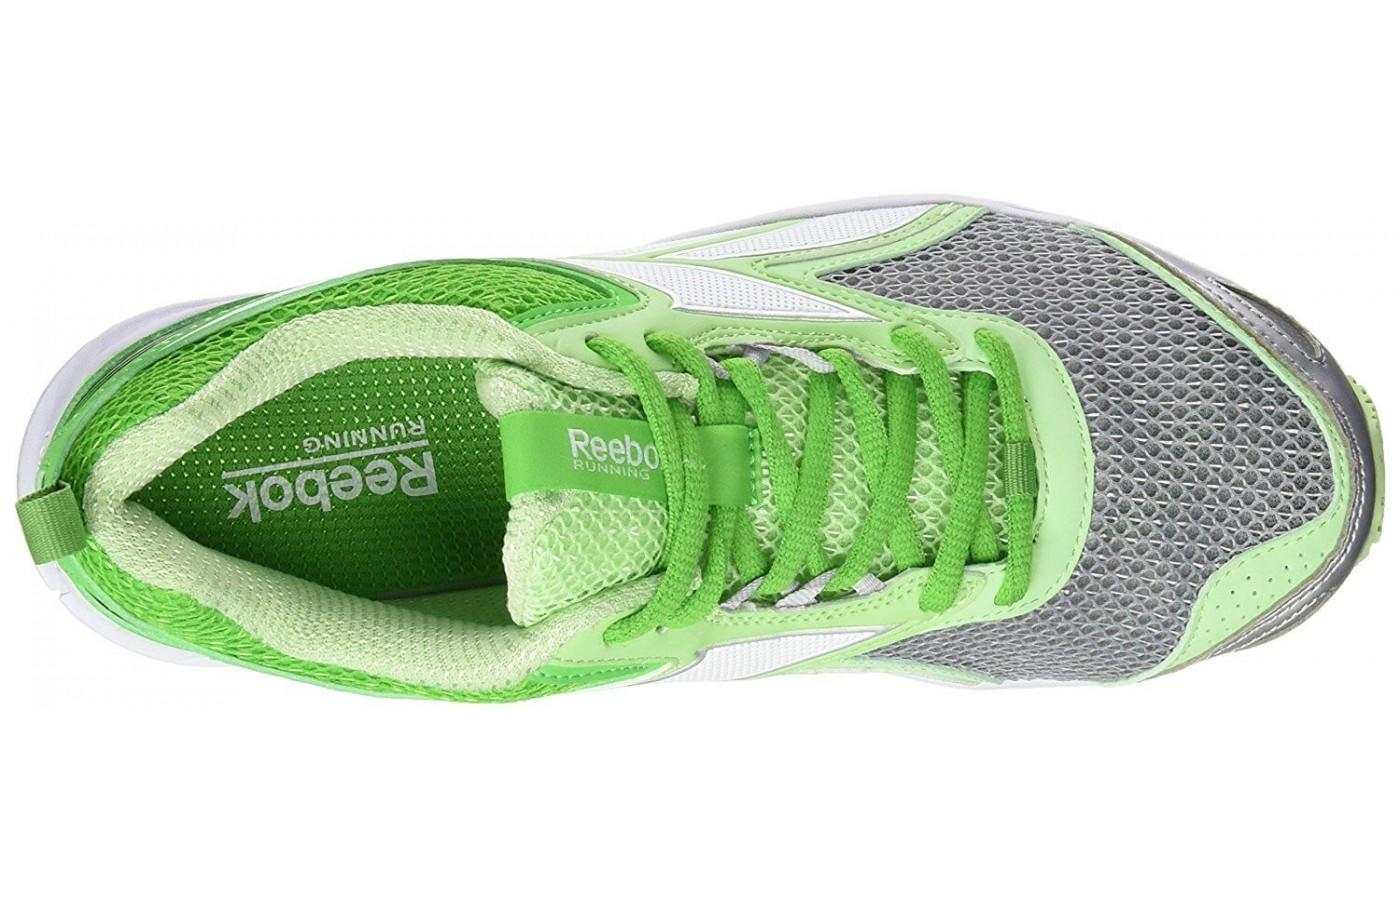 Here is a look at the breathable mesh upper of the Reebok TripleHall 5.0